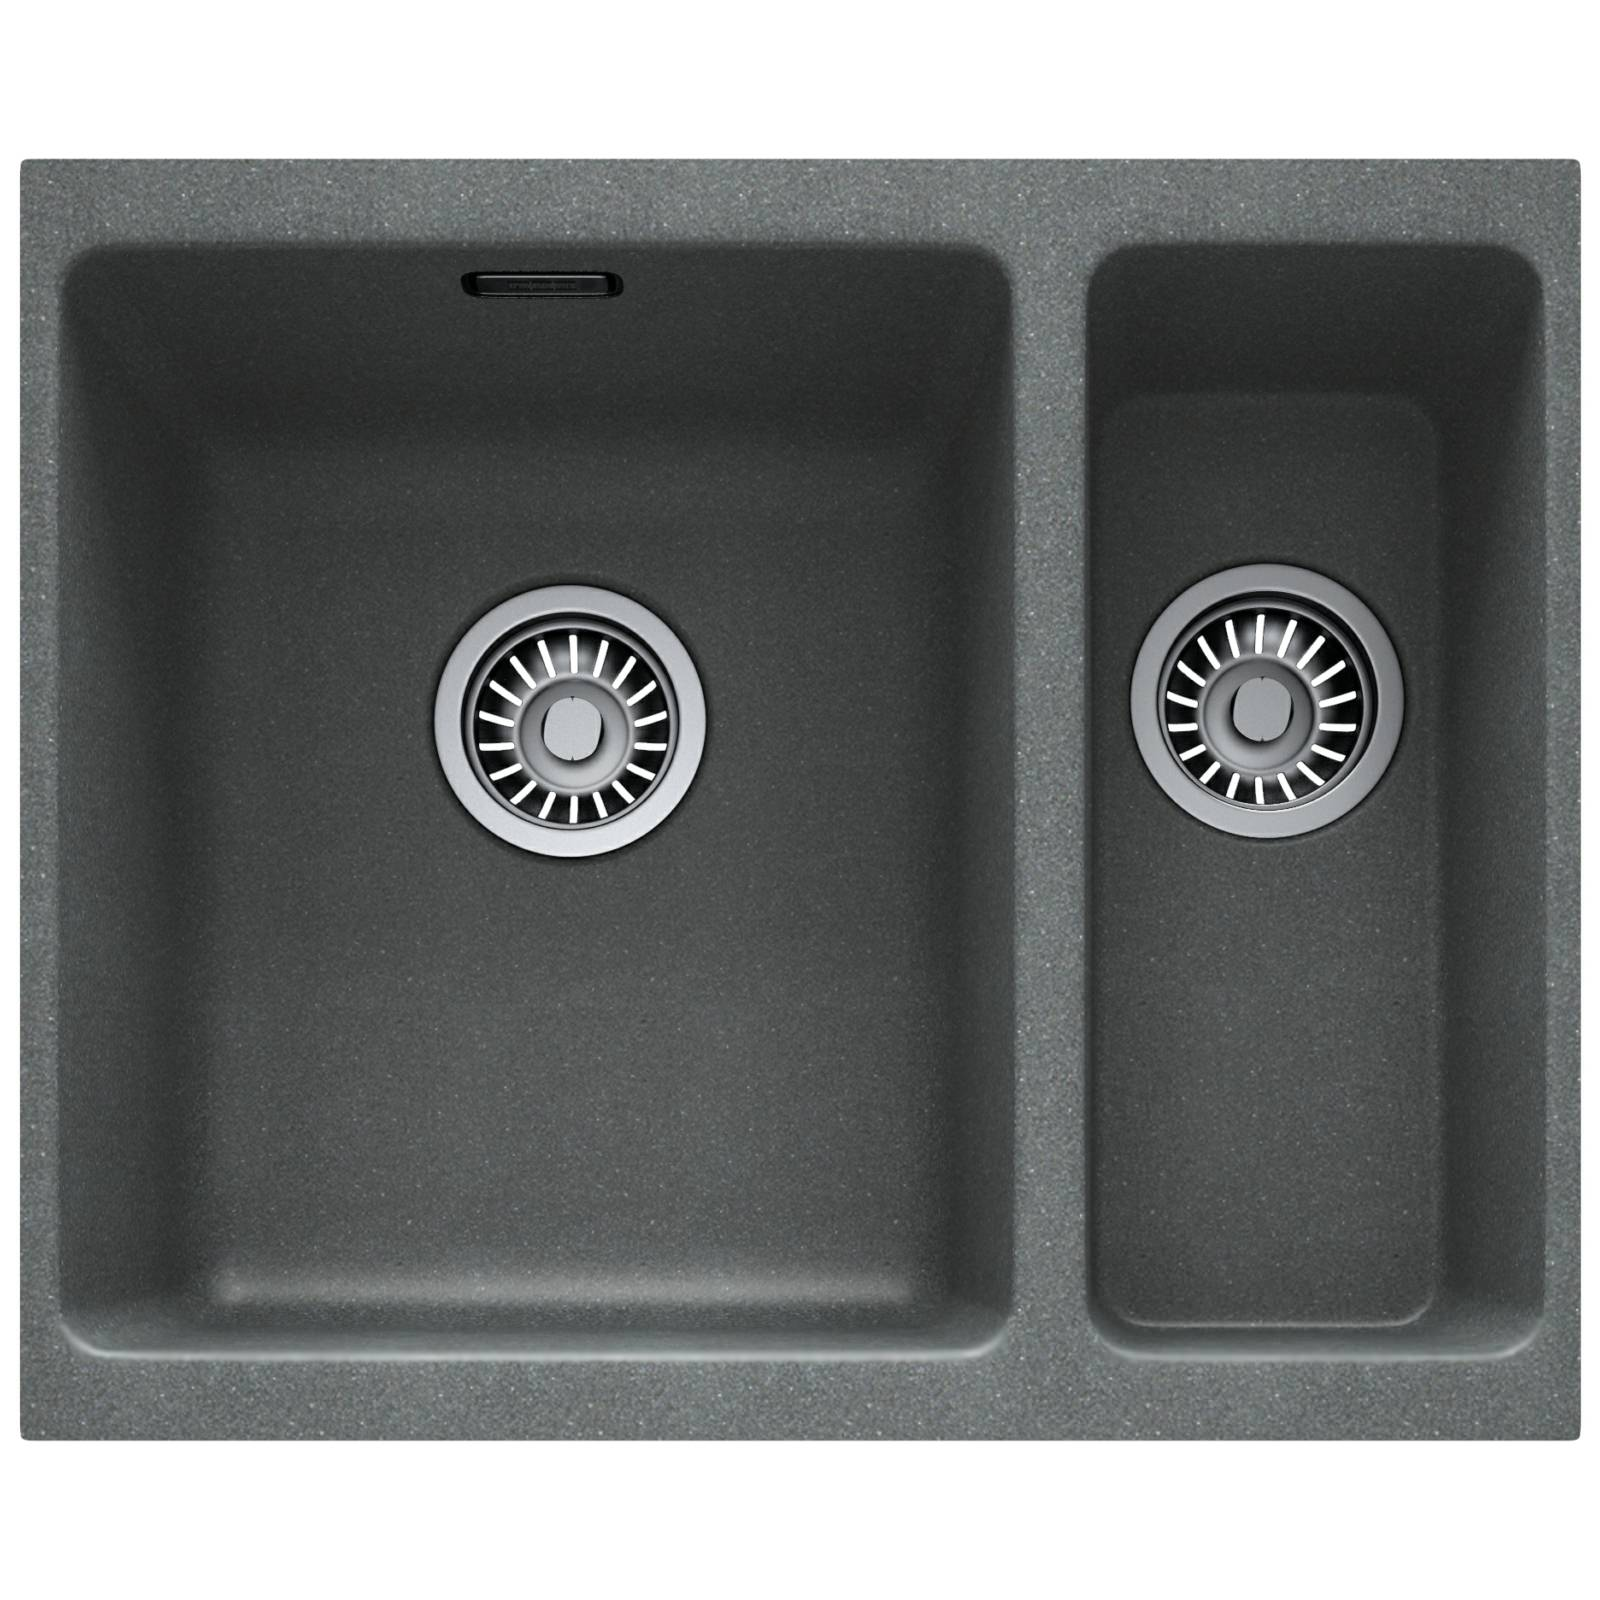 Franke Fragranite Undermount Sink : Franke Kubus KBG 160 Fragranite Stone Grey 1.5 Bowl Undermount Sink ...